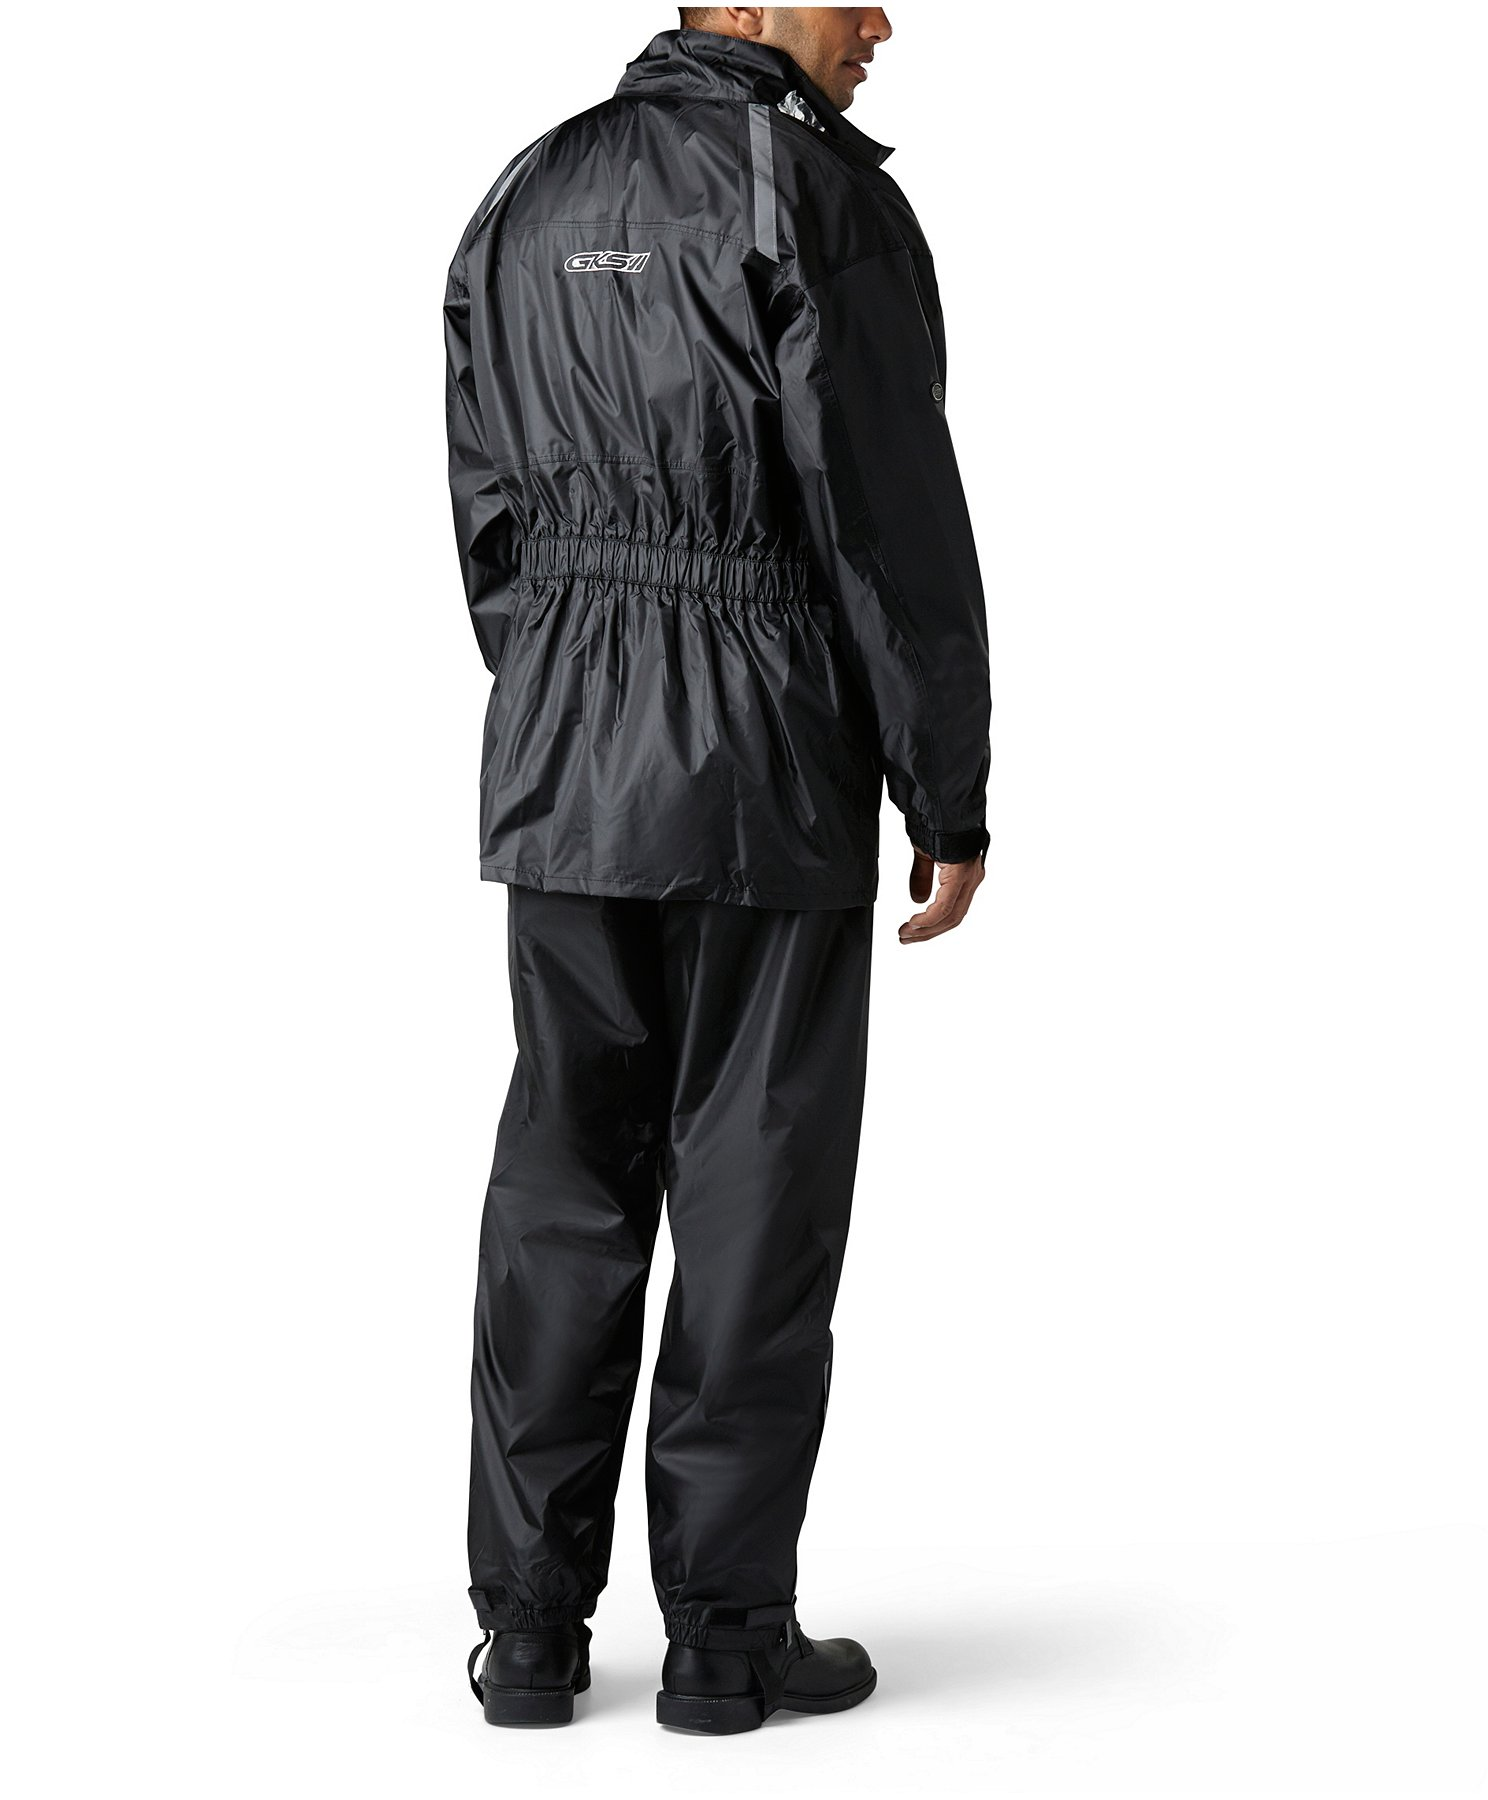 new selection shop for official super specials Men's Two-Piece Motorcycle Rainsuit